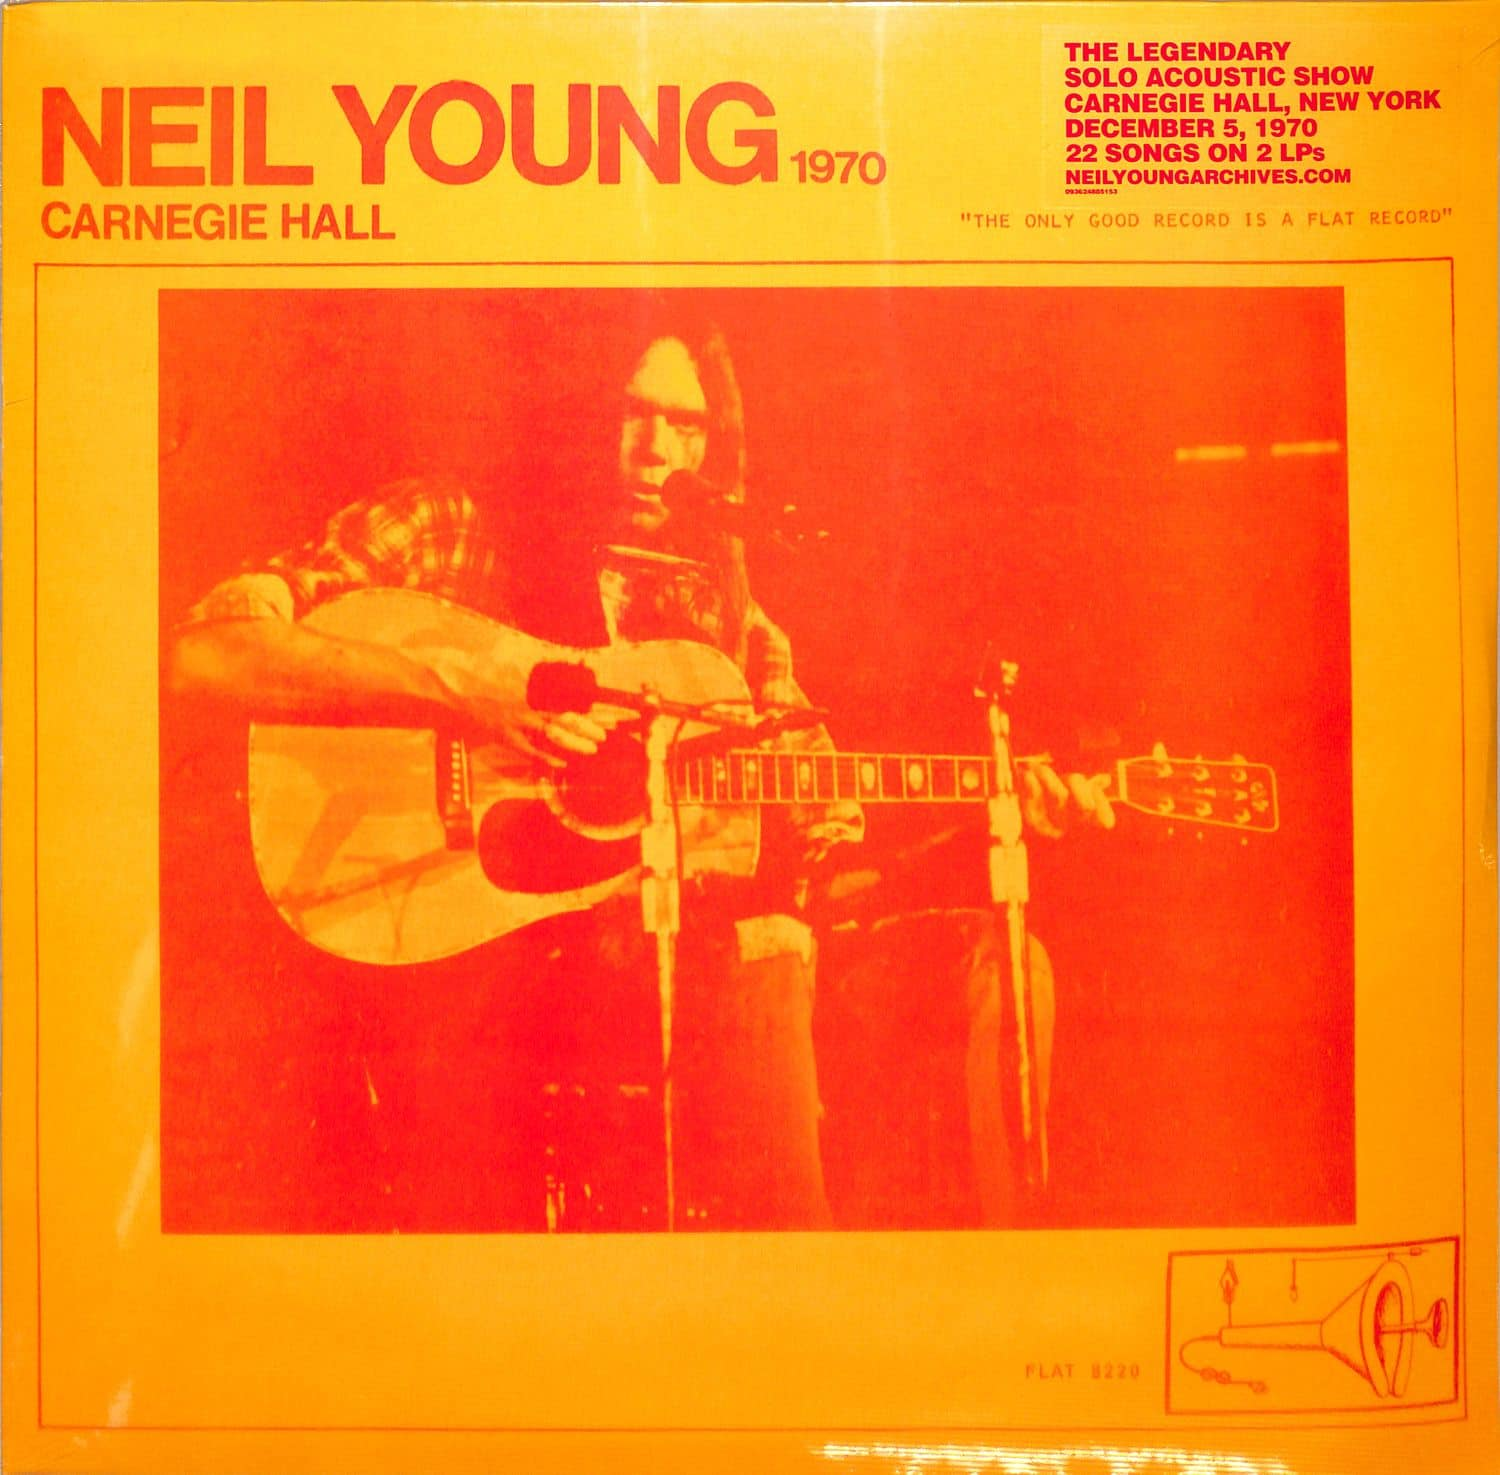 Neil Young - CARNEGIE HALL 1970